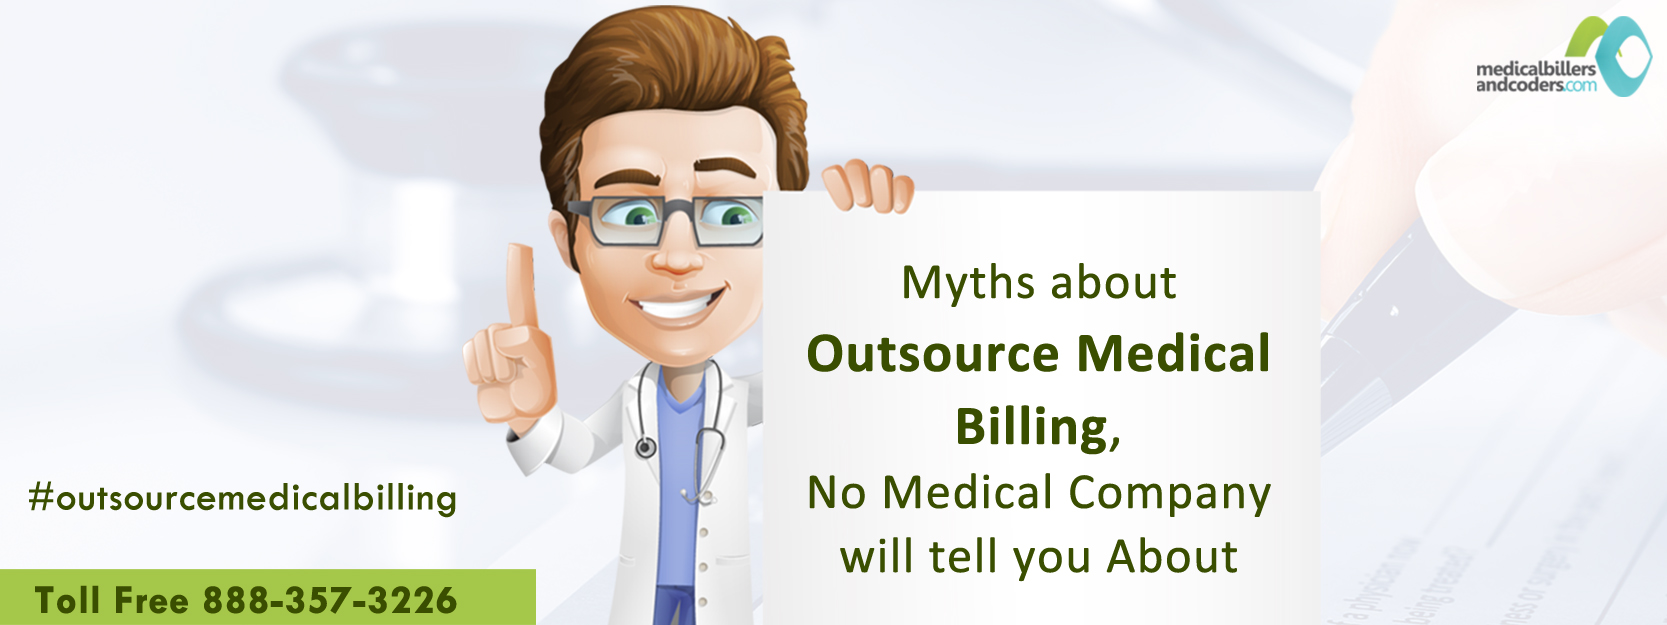 myths-about-outsource-medical-billing